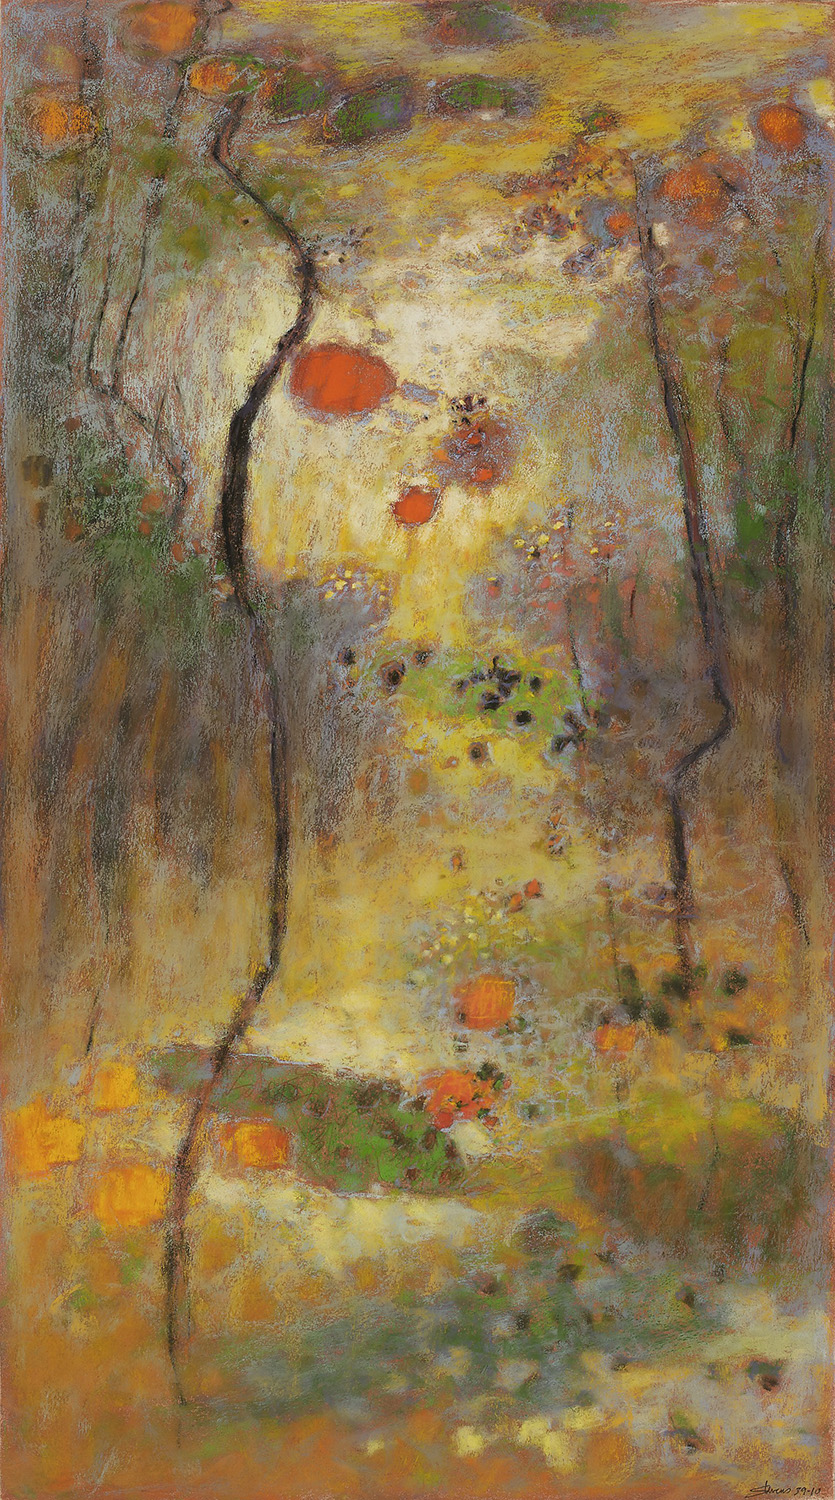 The Spell | pastel on paper | 36 x 20"